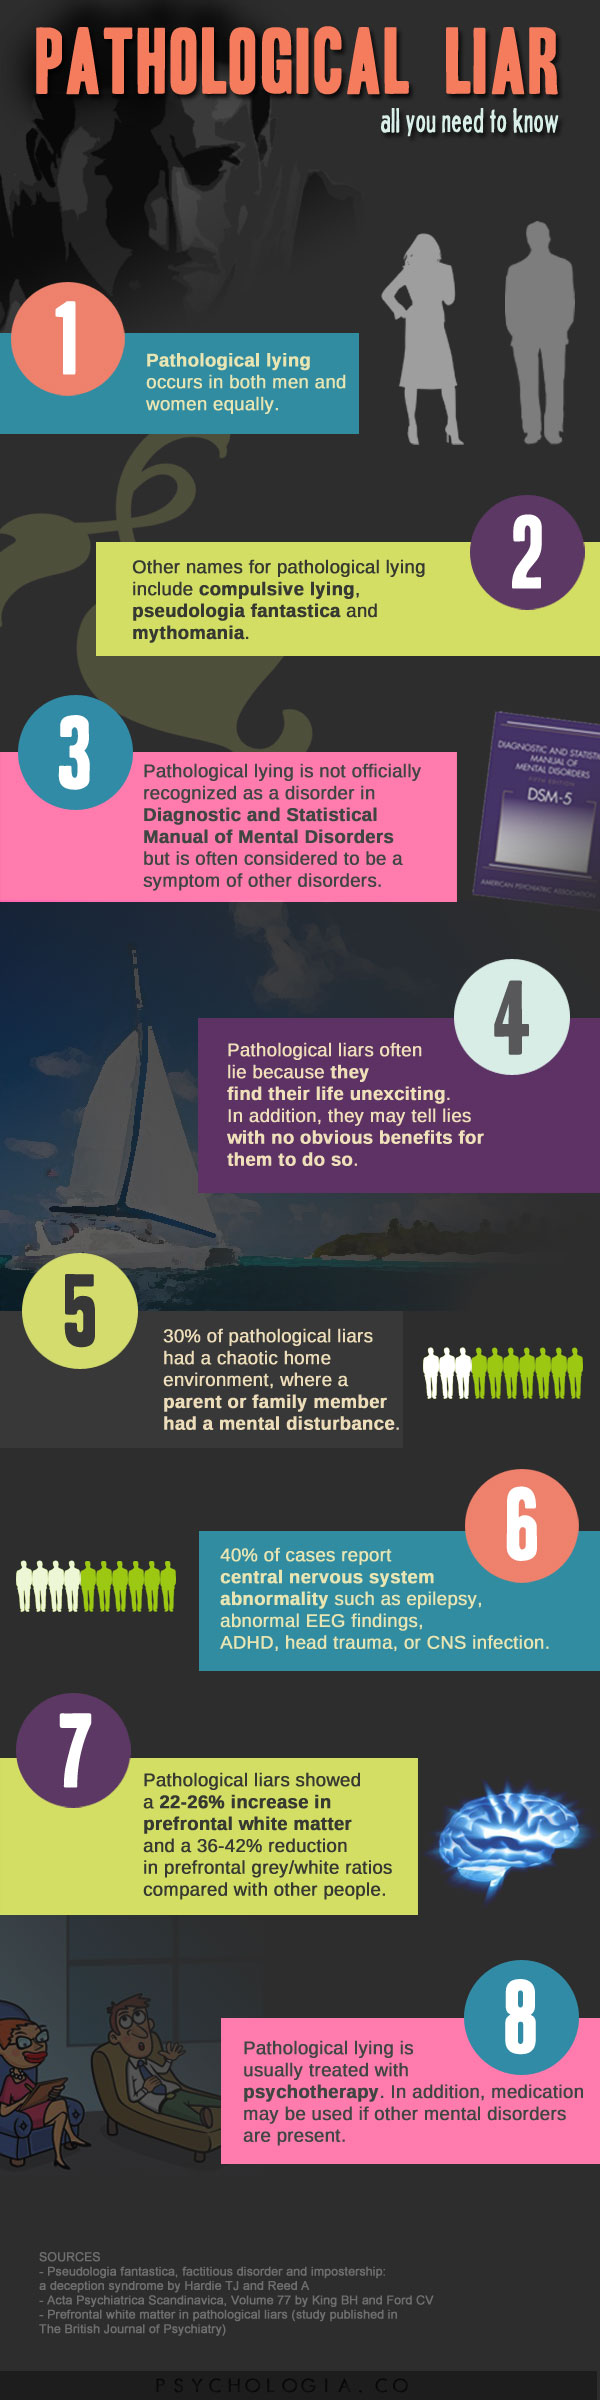 Pathological Liar: All You Need to Know (infographic)